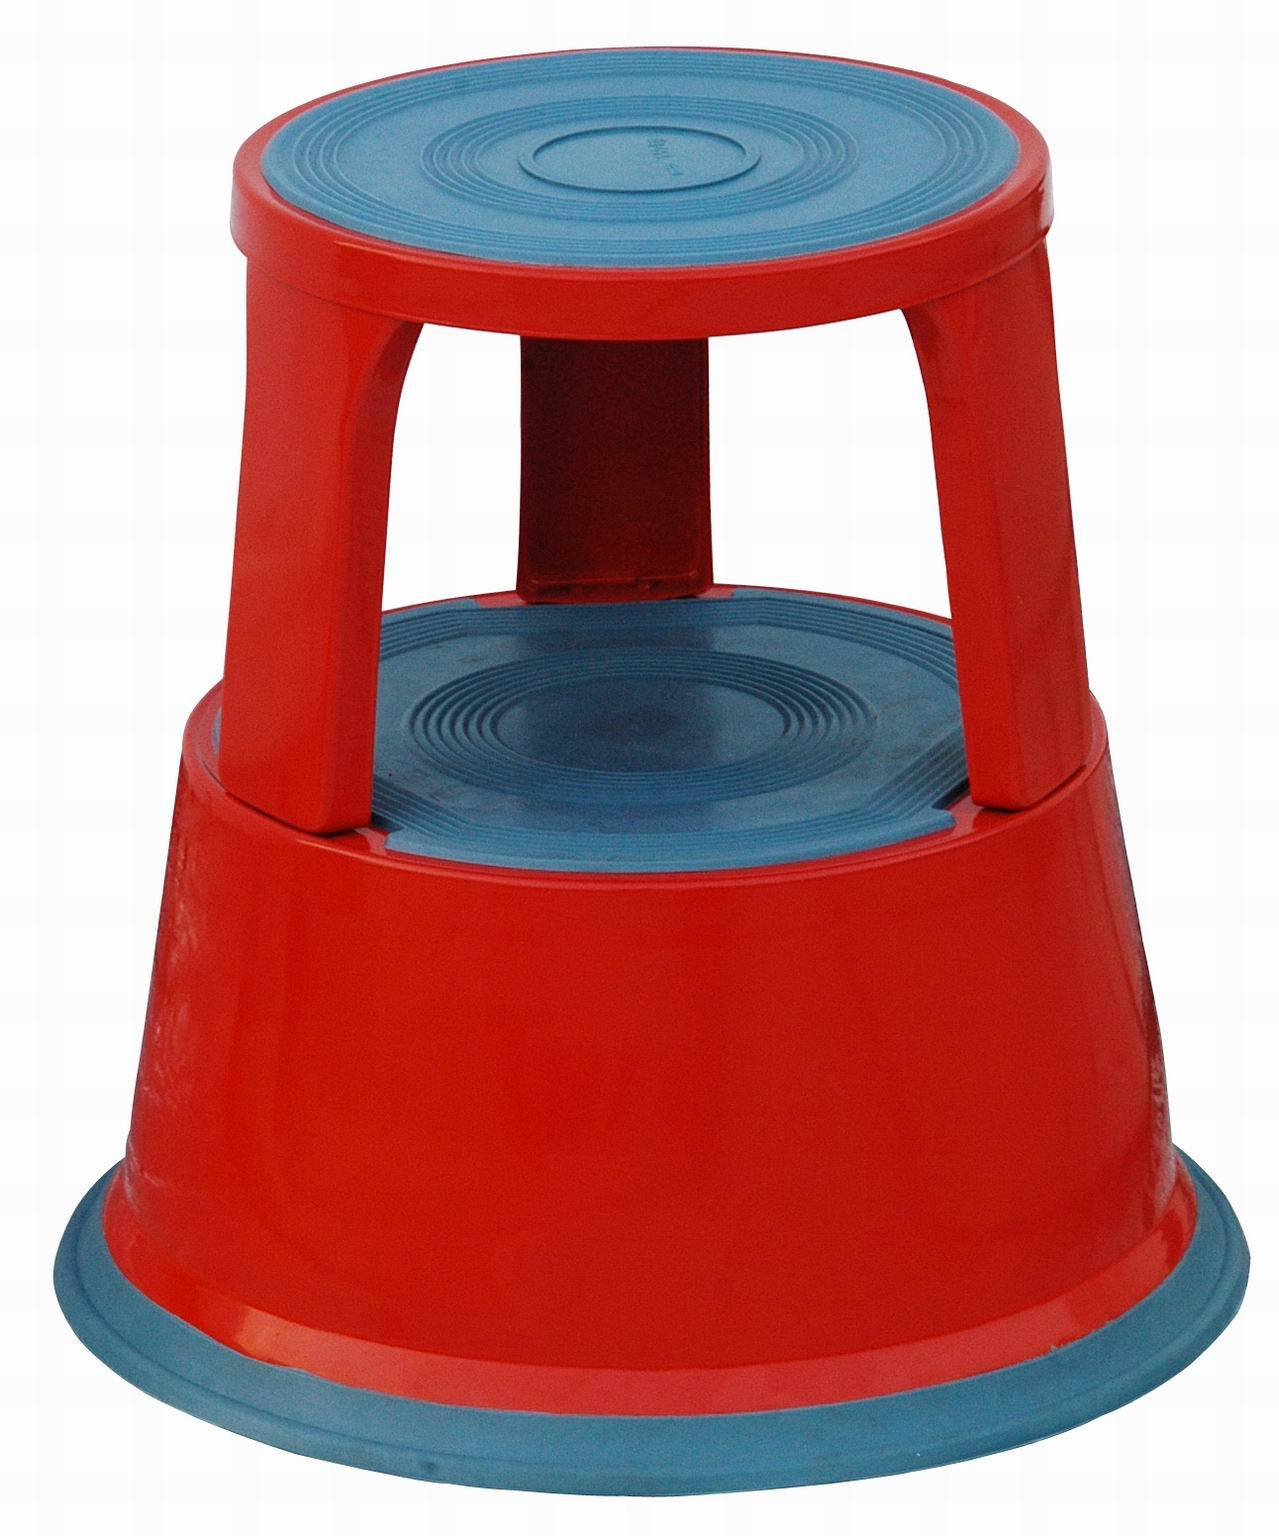 casters ft rolling commercial stool with and s collapsible of rubbermaid industrial step at stools handle image